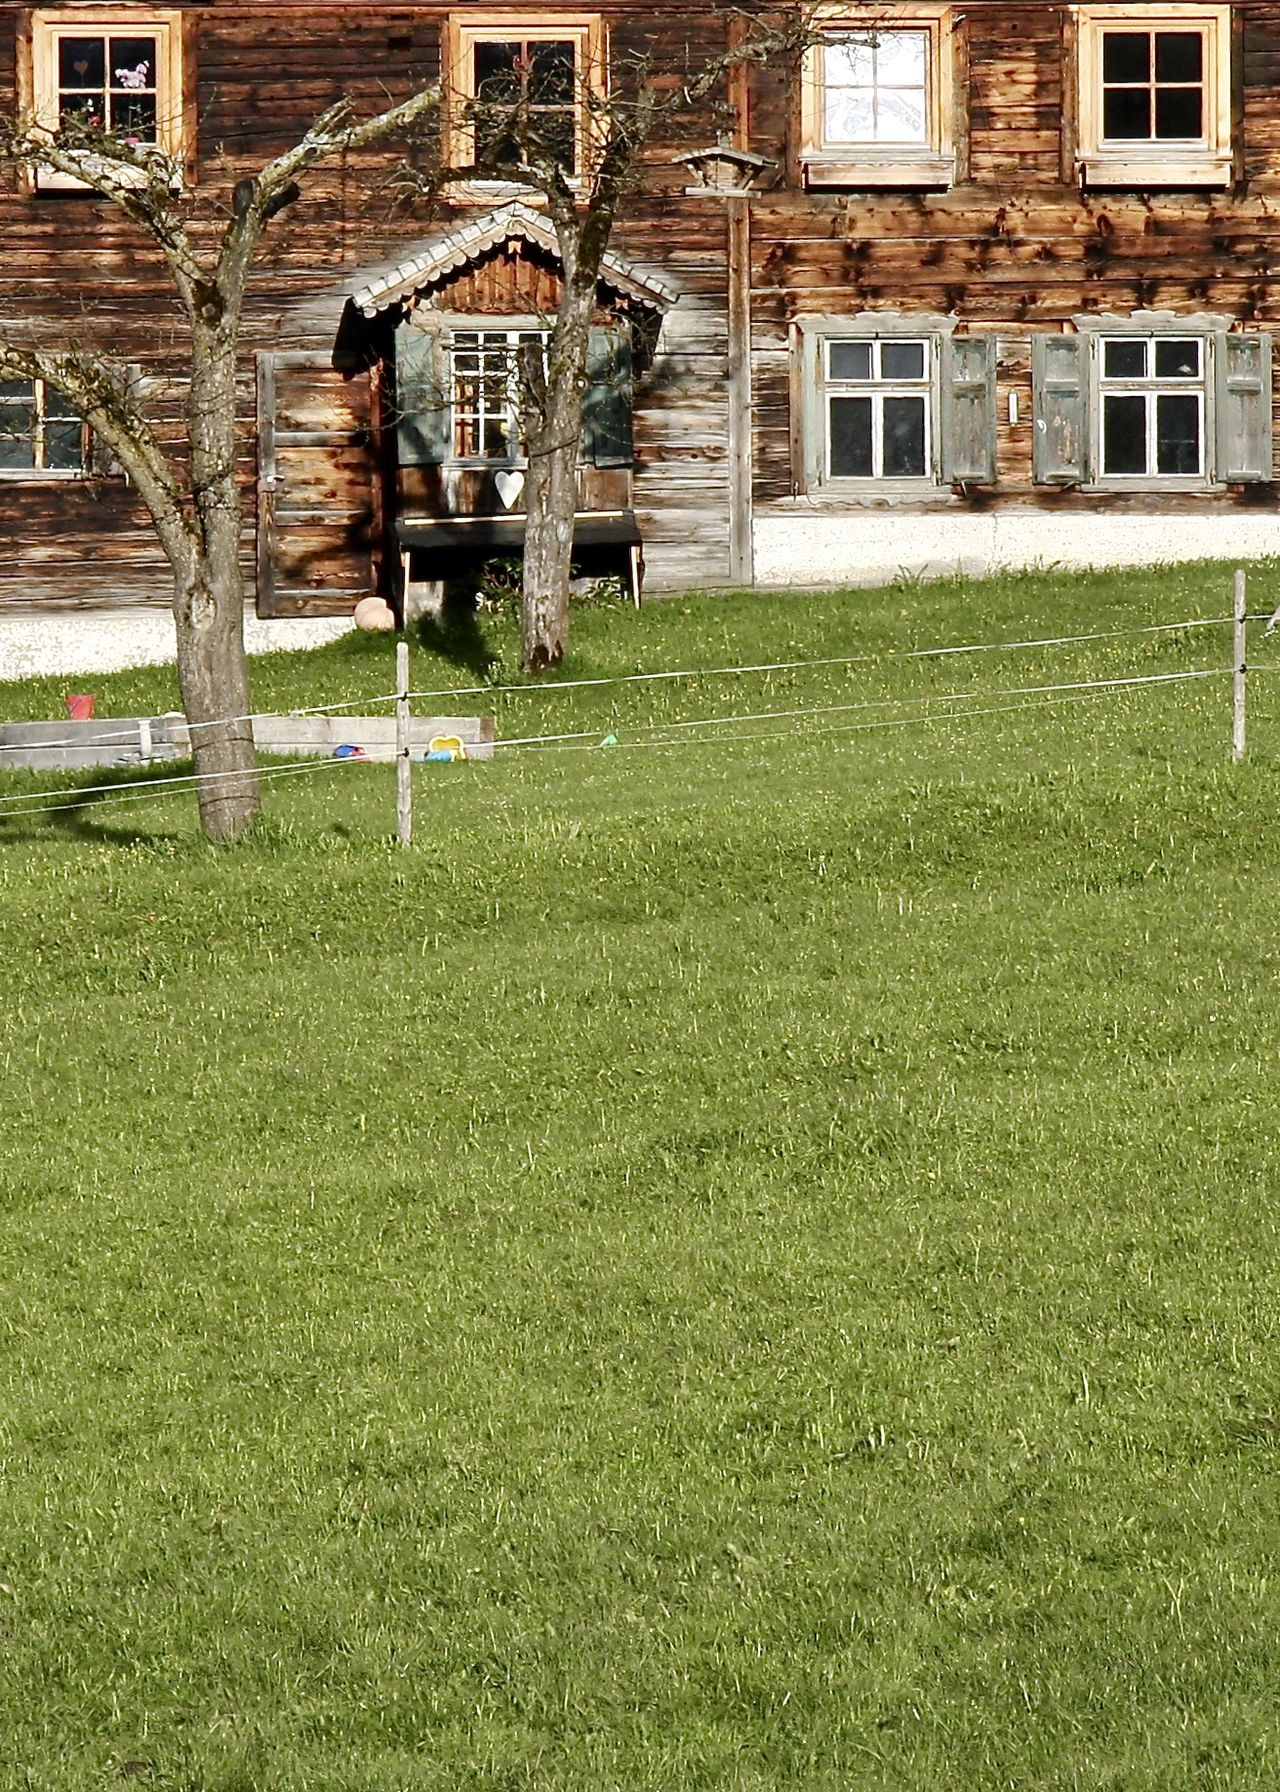 Agriculture Alps Architecture Building Exterior Built Structure Colors Fence Grass Green Color Greenery Growth Holiday House Meadow Nature Outdoors Residential Building Tannheimer Tal Tirol  Traditional Travel Tree Window Wooden